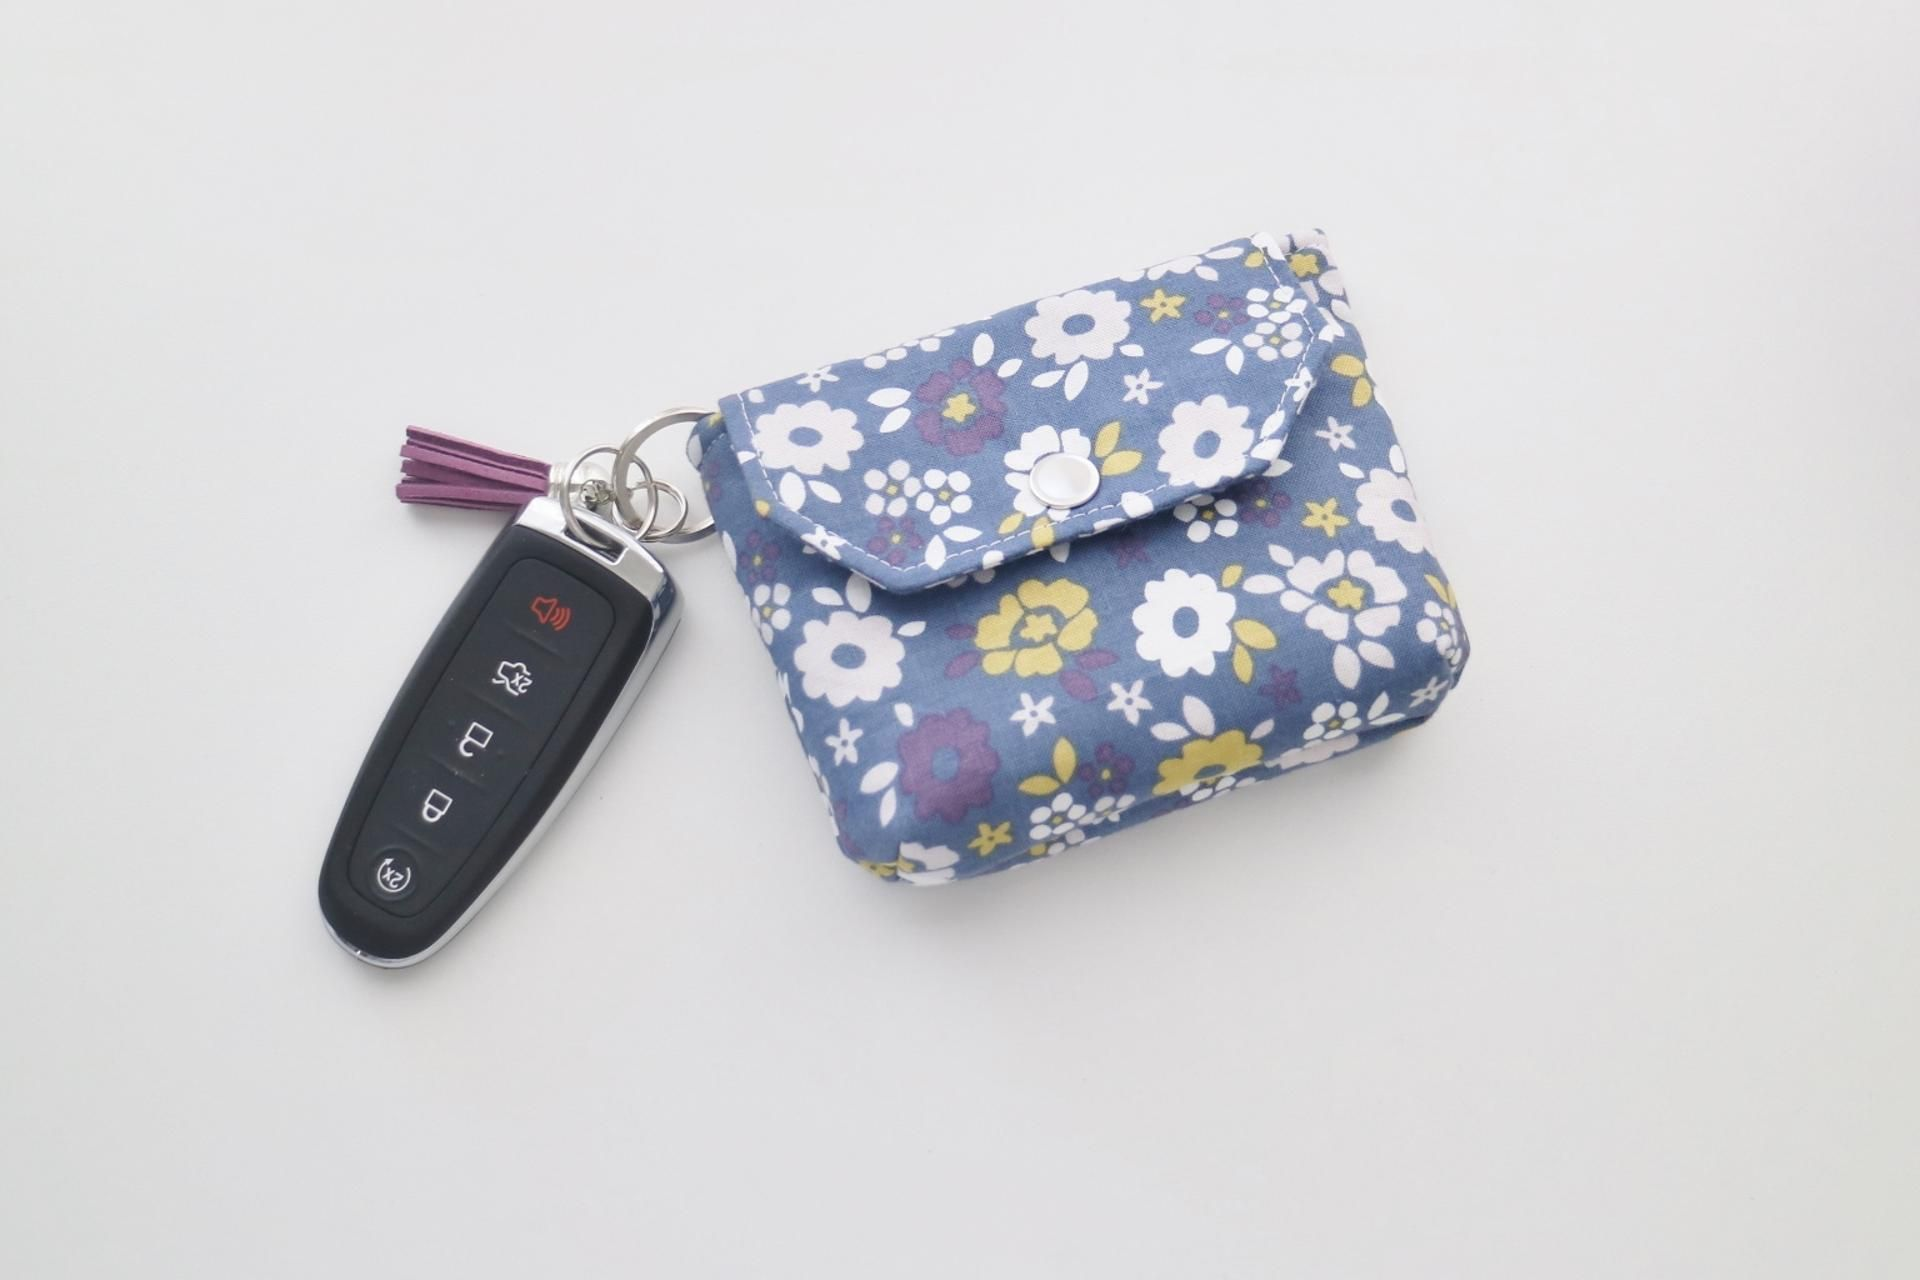 Flappy Coin Purse | Craftsy | QUILTING, SMALL THINGS | Pinterest ...